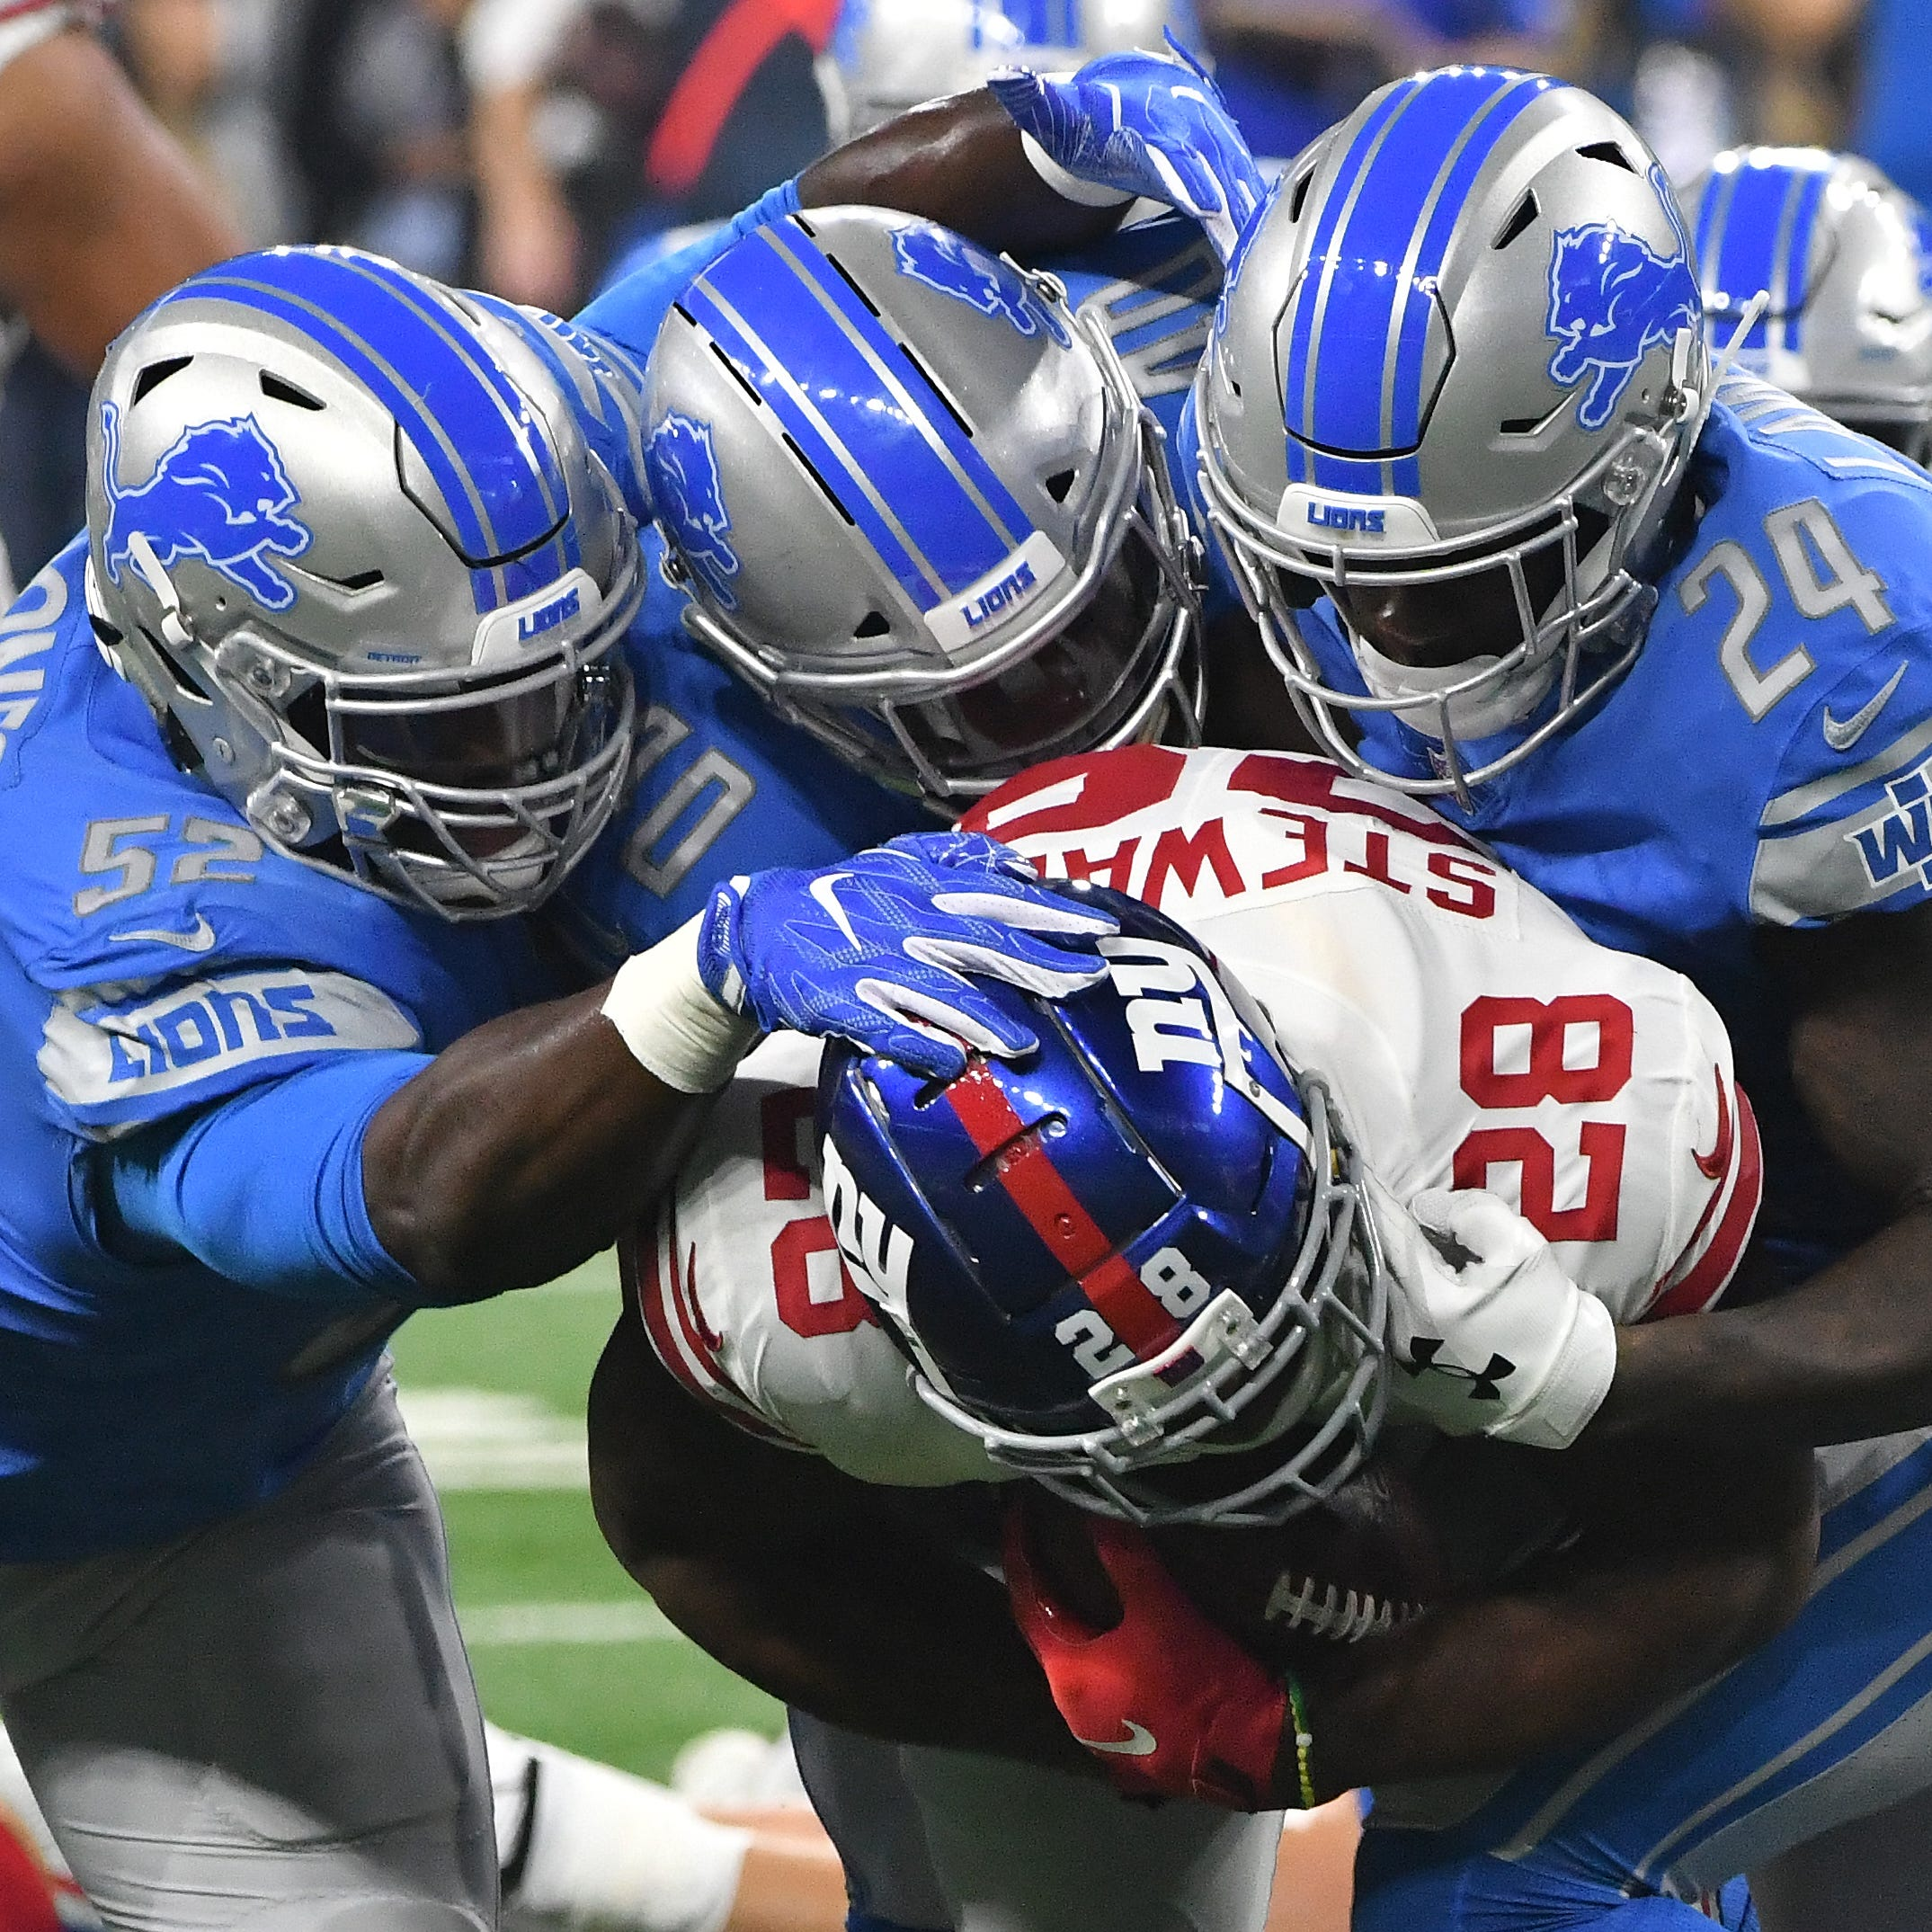 Lions' starters sloppy, struggle in lashing by Giants